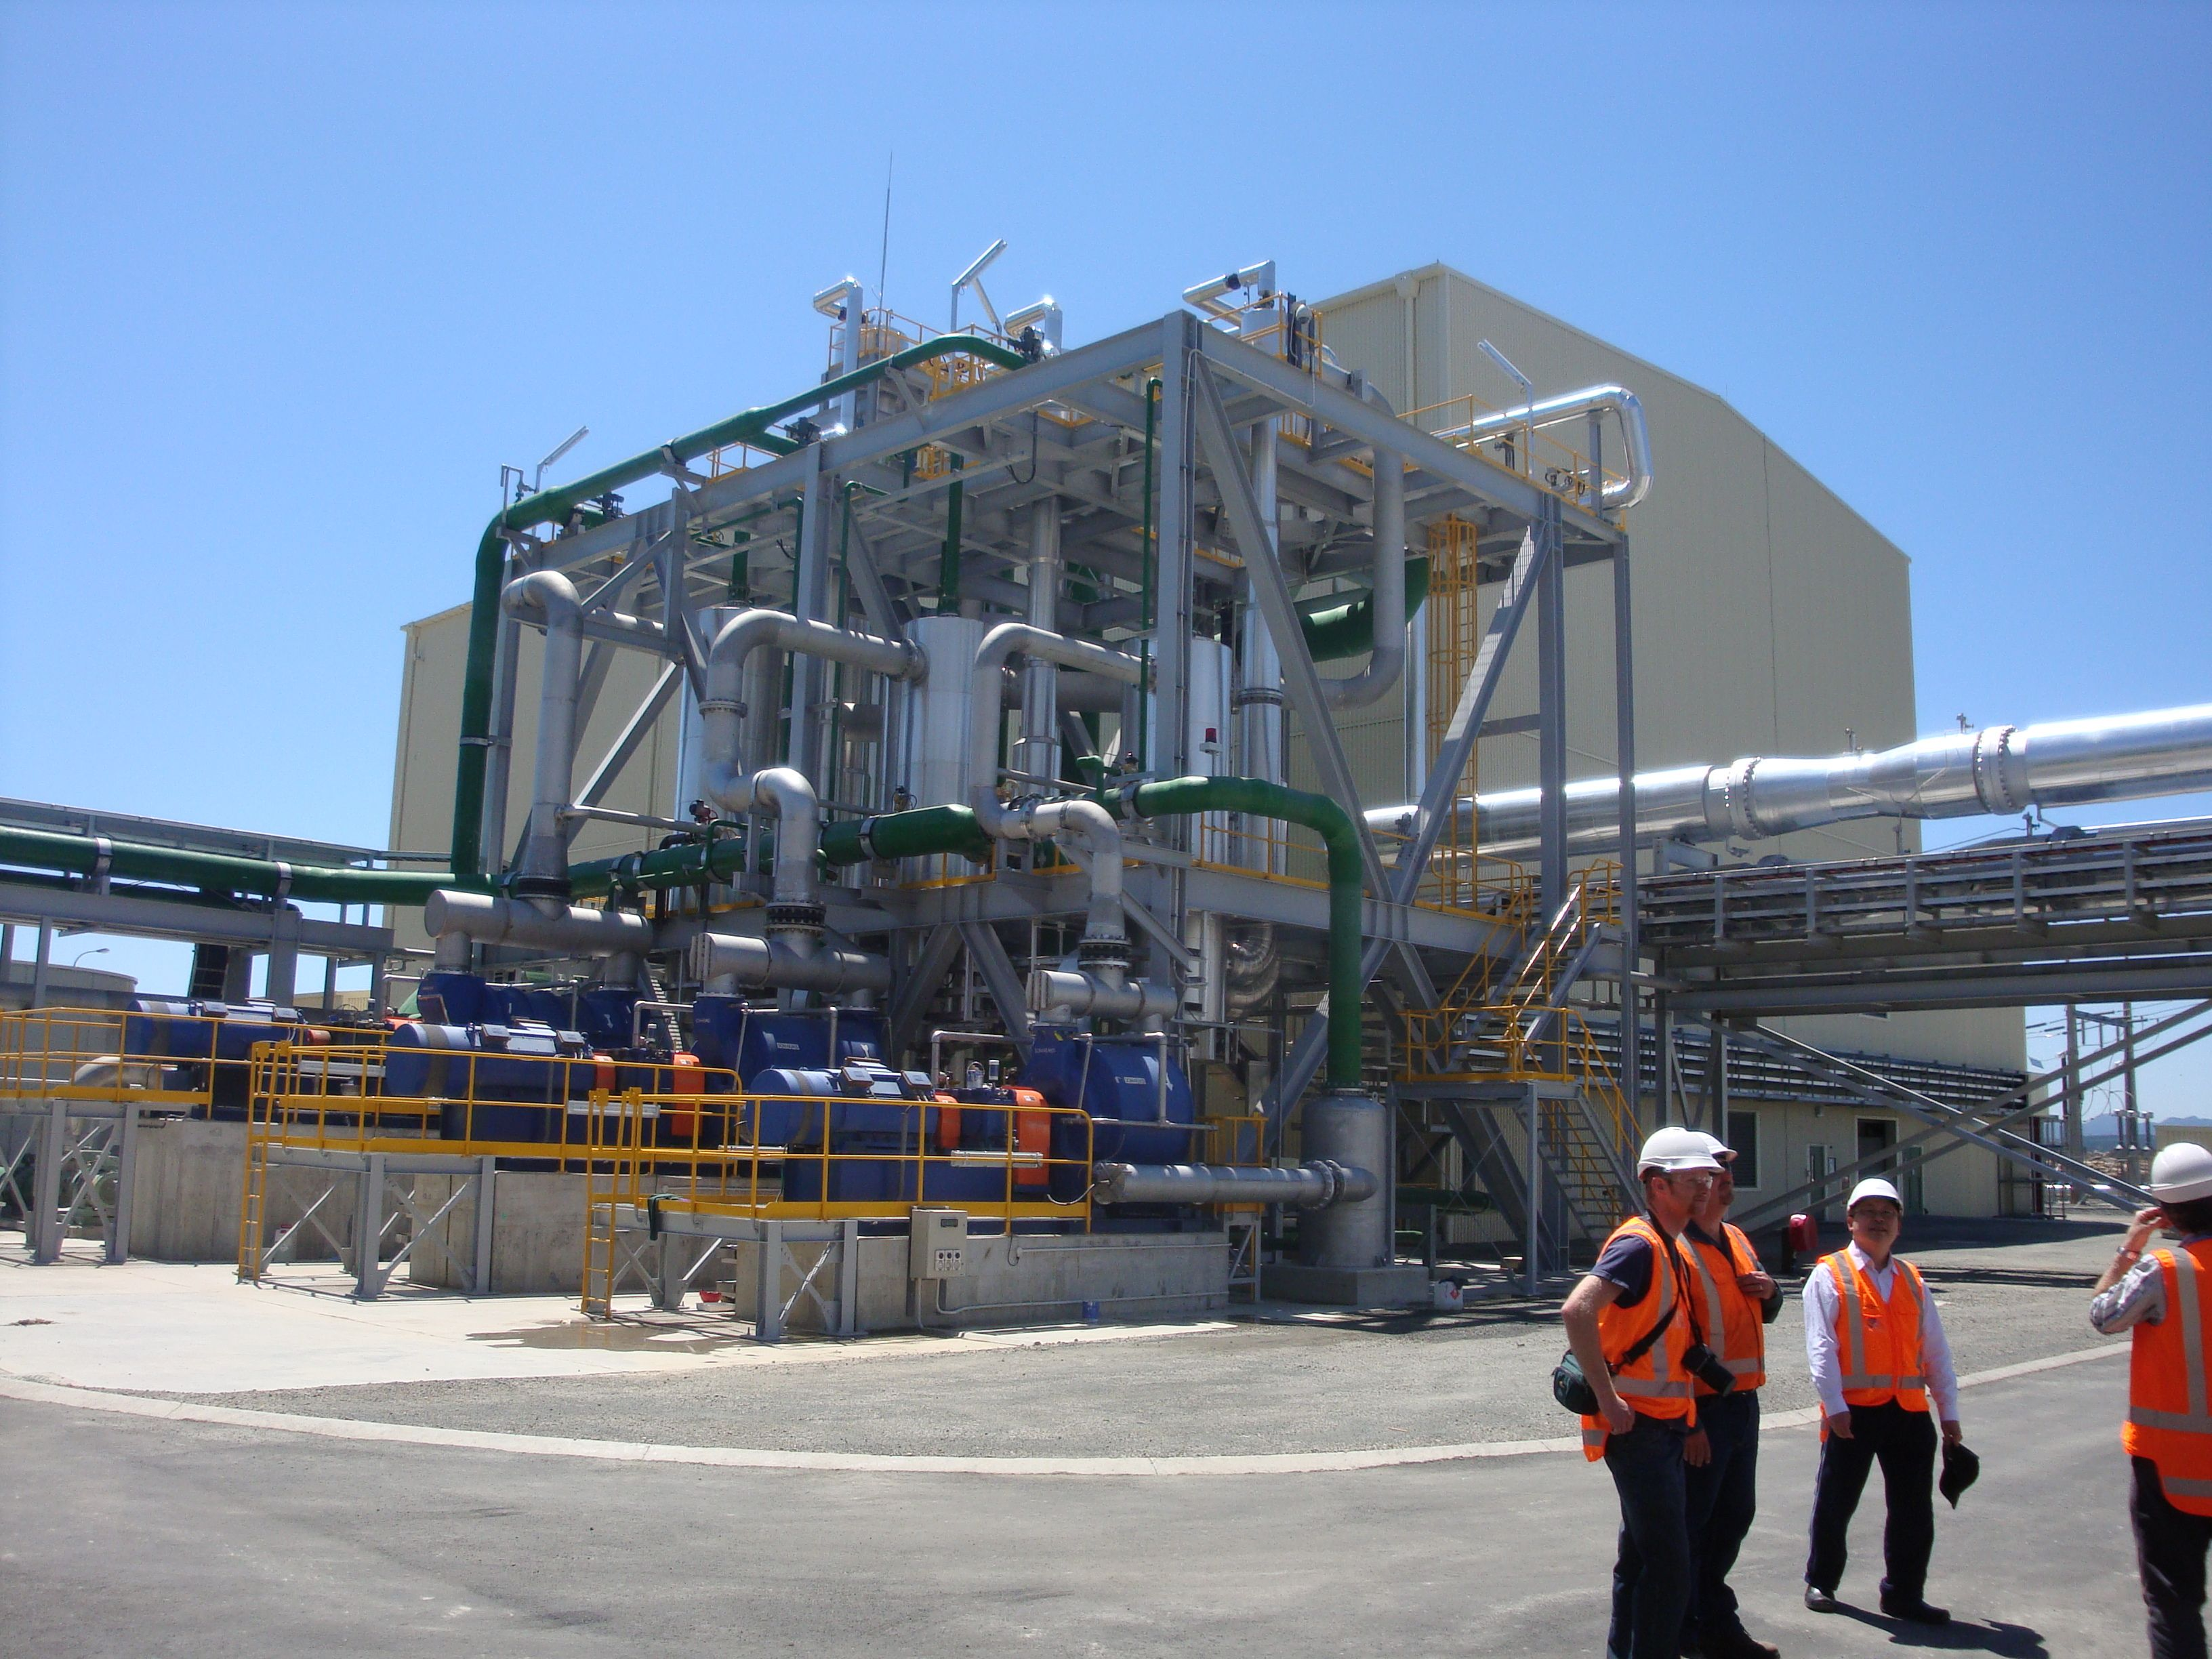 The Kawerau Power Station is a 100 megawatt geothermal power plant